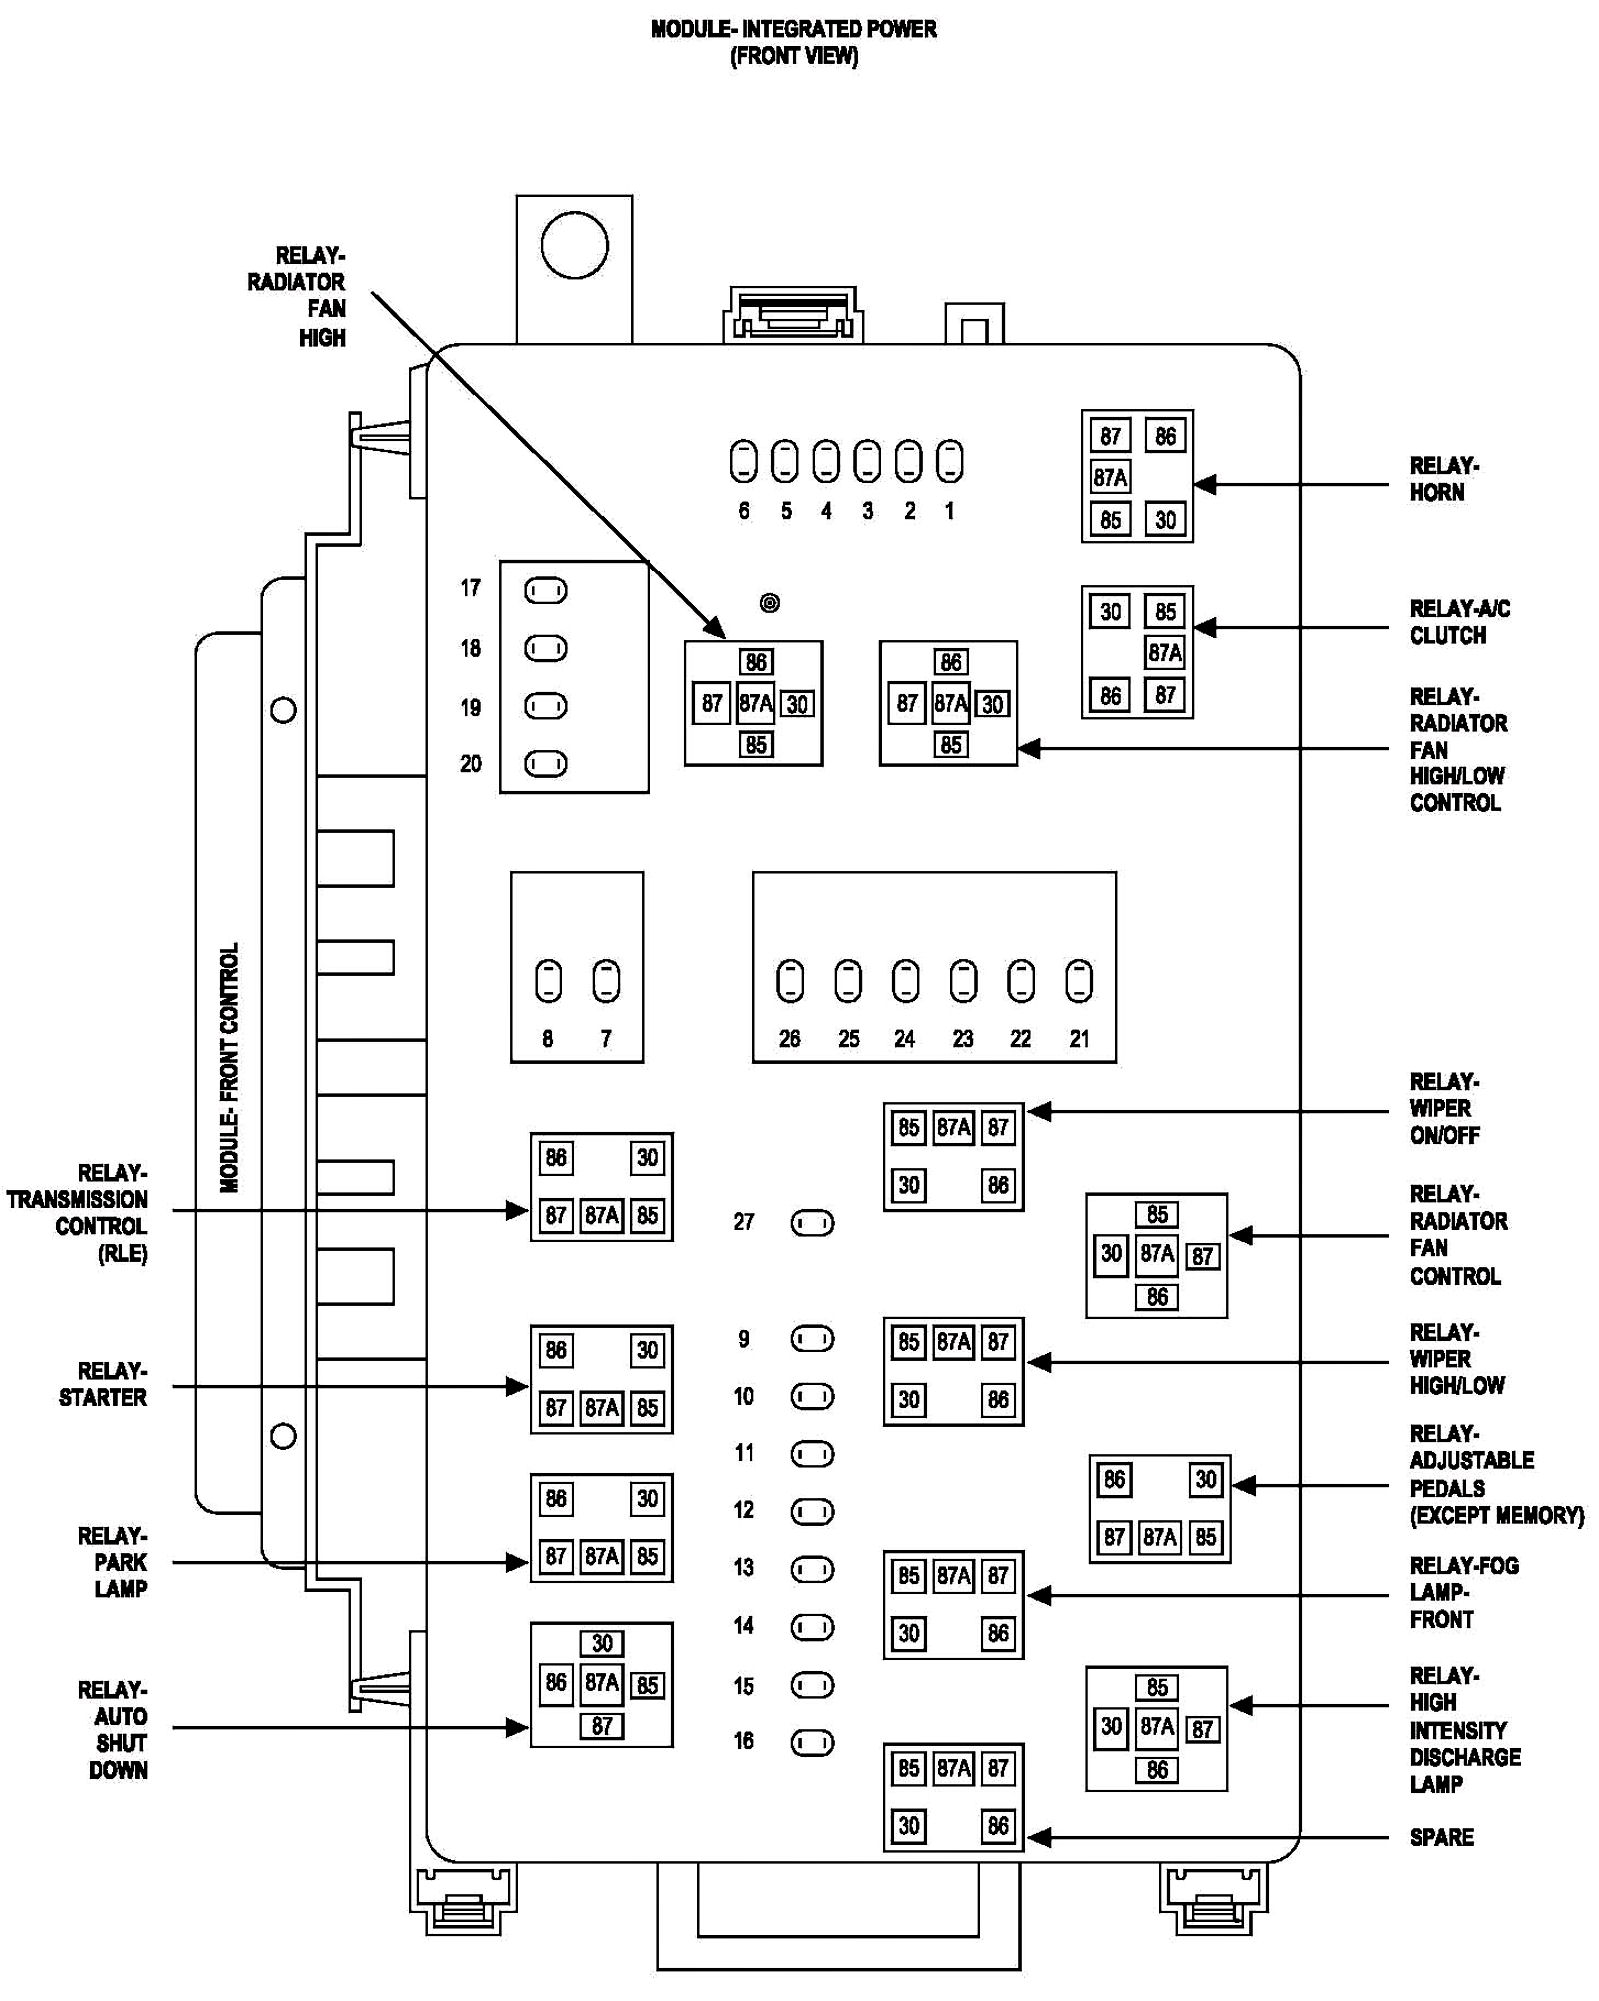 Fuse Box 05 Hyundai Elantra Wiring Library 2002 Diagram On Chrysler 300 Books Of U2022 2005 Relay Chart